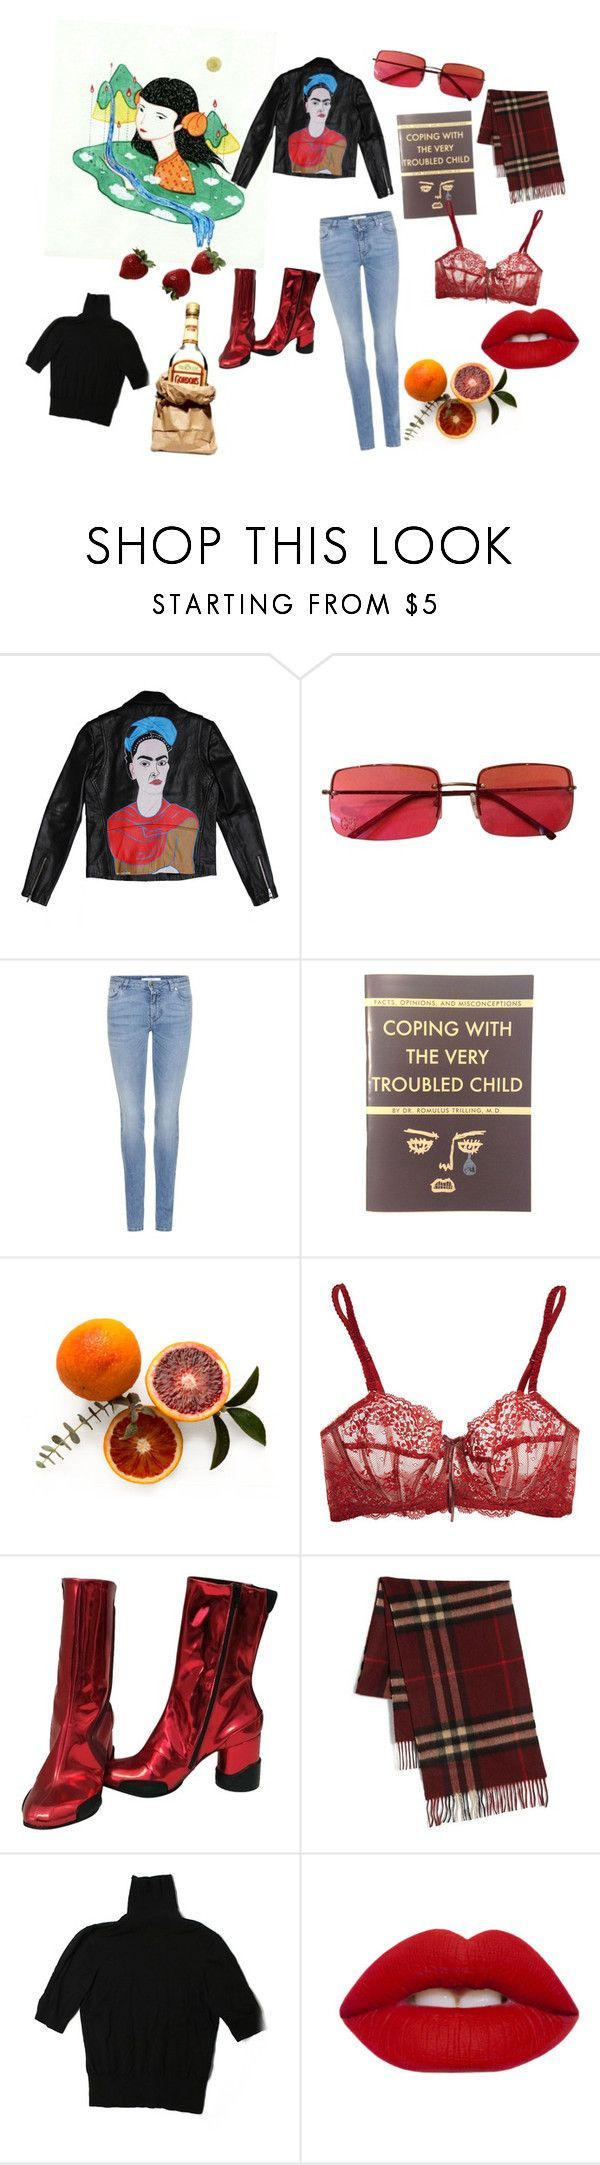 """""""aries"""" by plllllrf ❤ liked on Polyvore featuring Gucci, Givenchy, LIST, Heidi Klum Intimates, Maison Margiela, Burberry, H&M, Lime Crime, zodiac and Mars"""